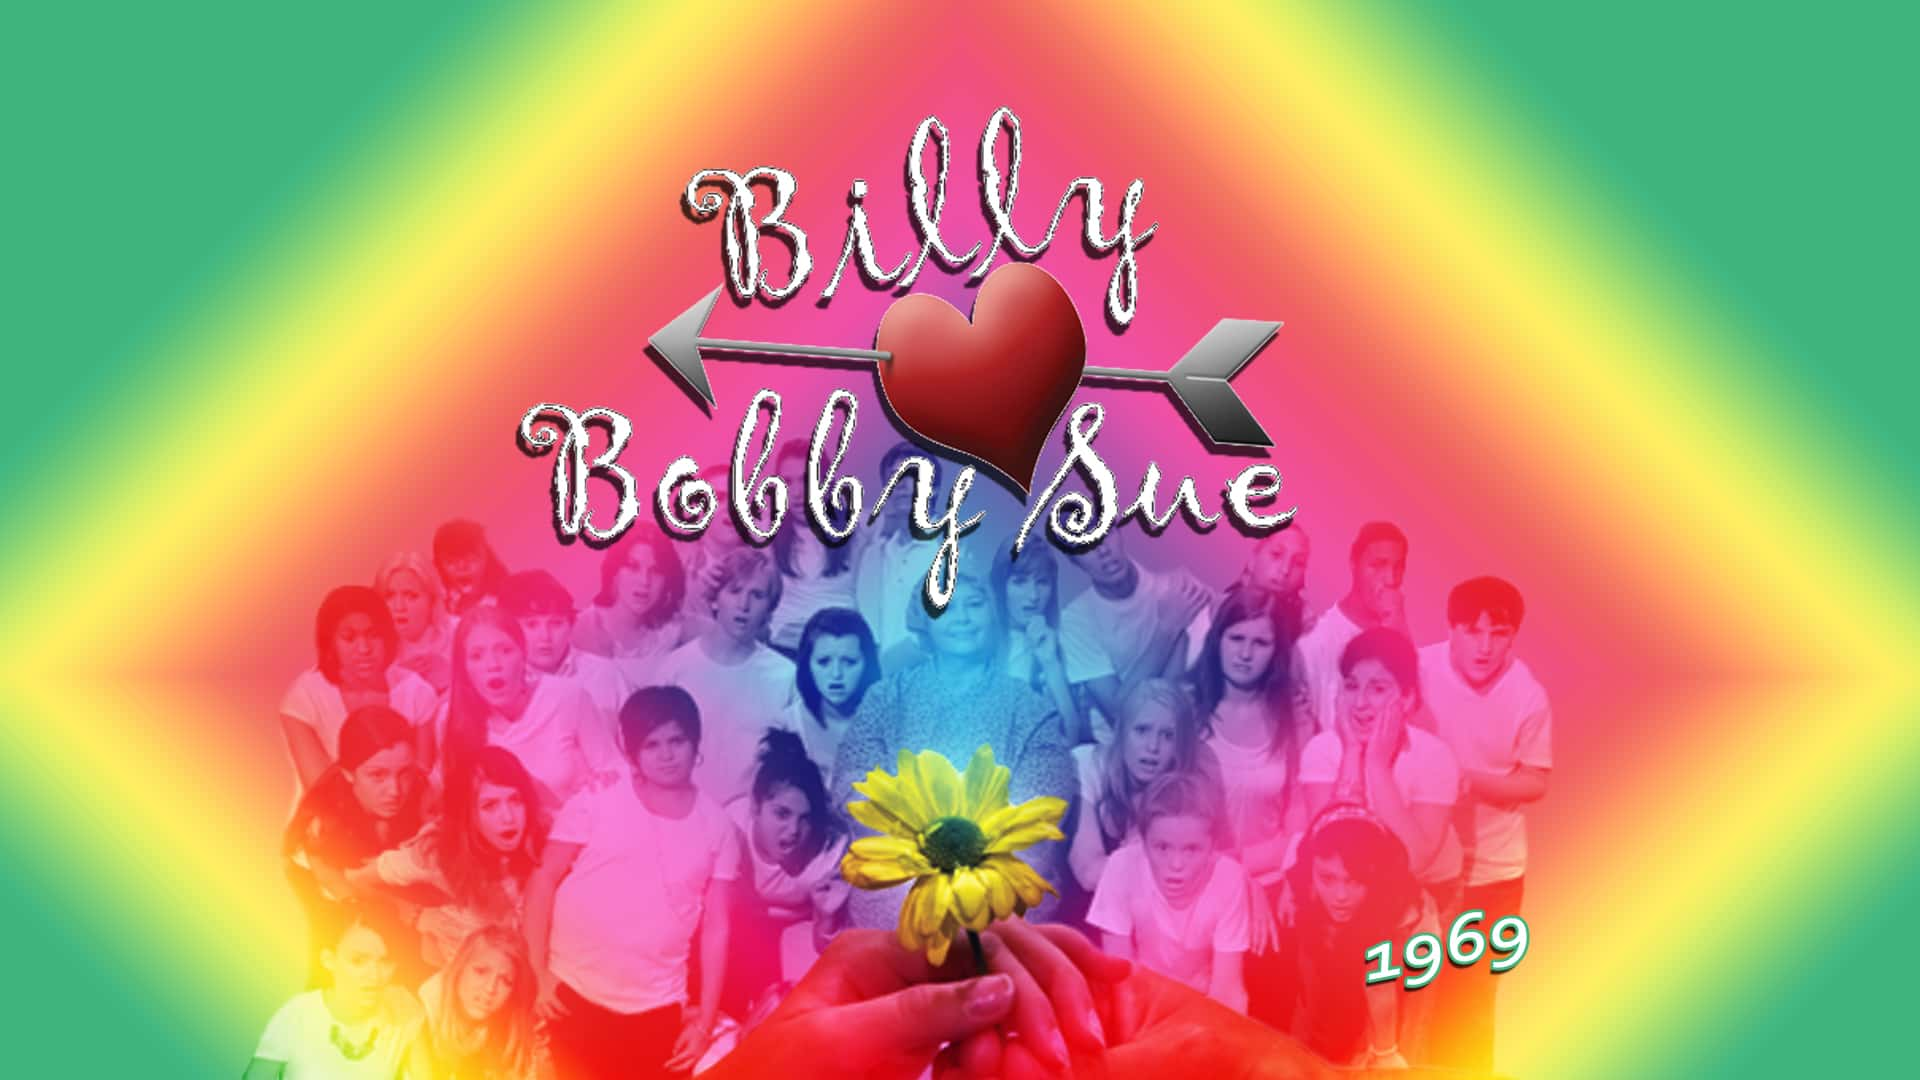 billy loves bobby sue